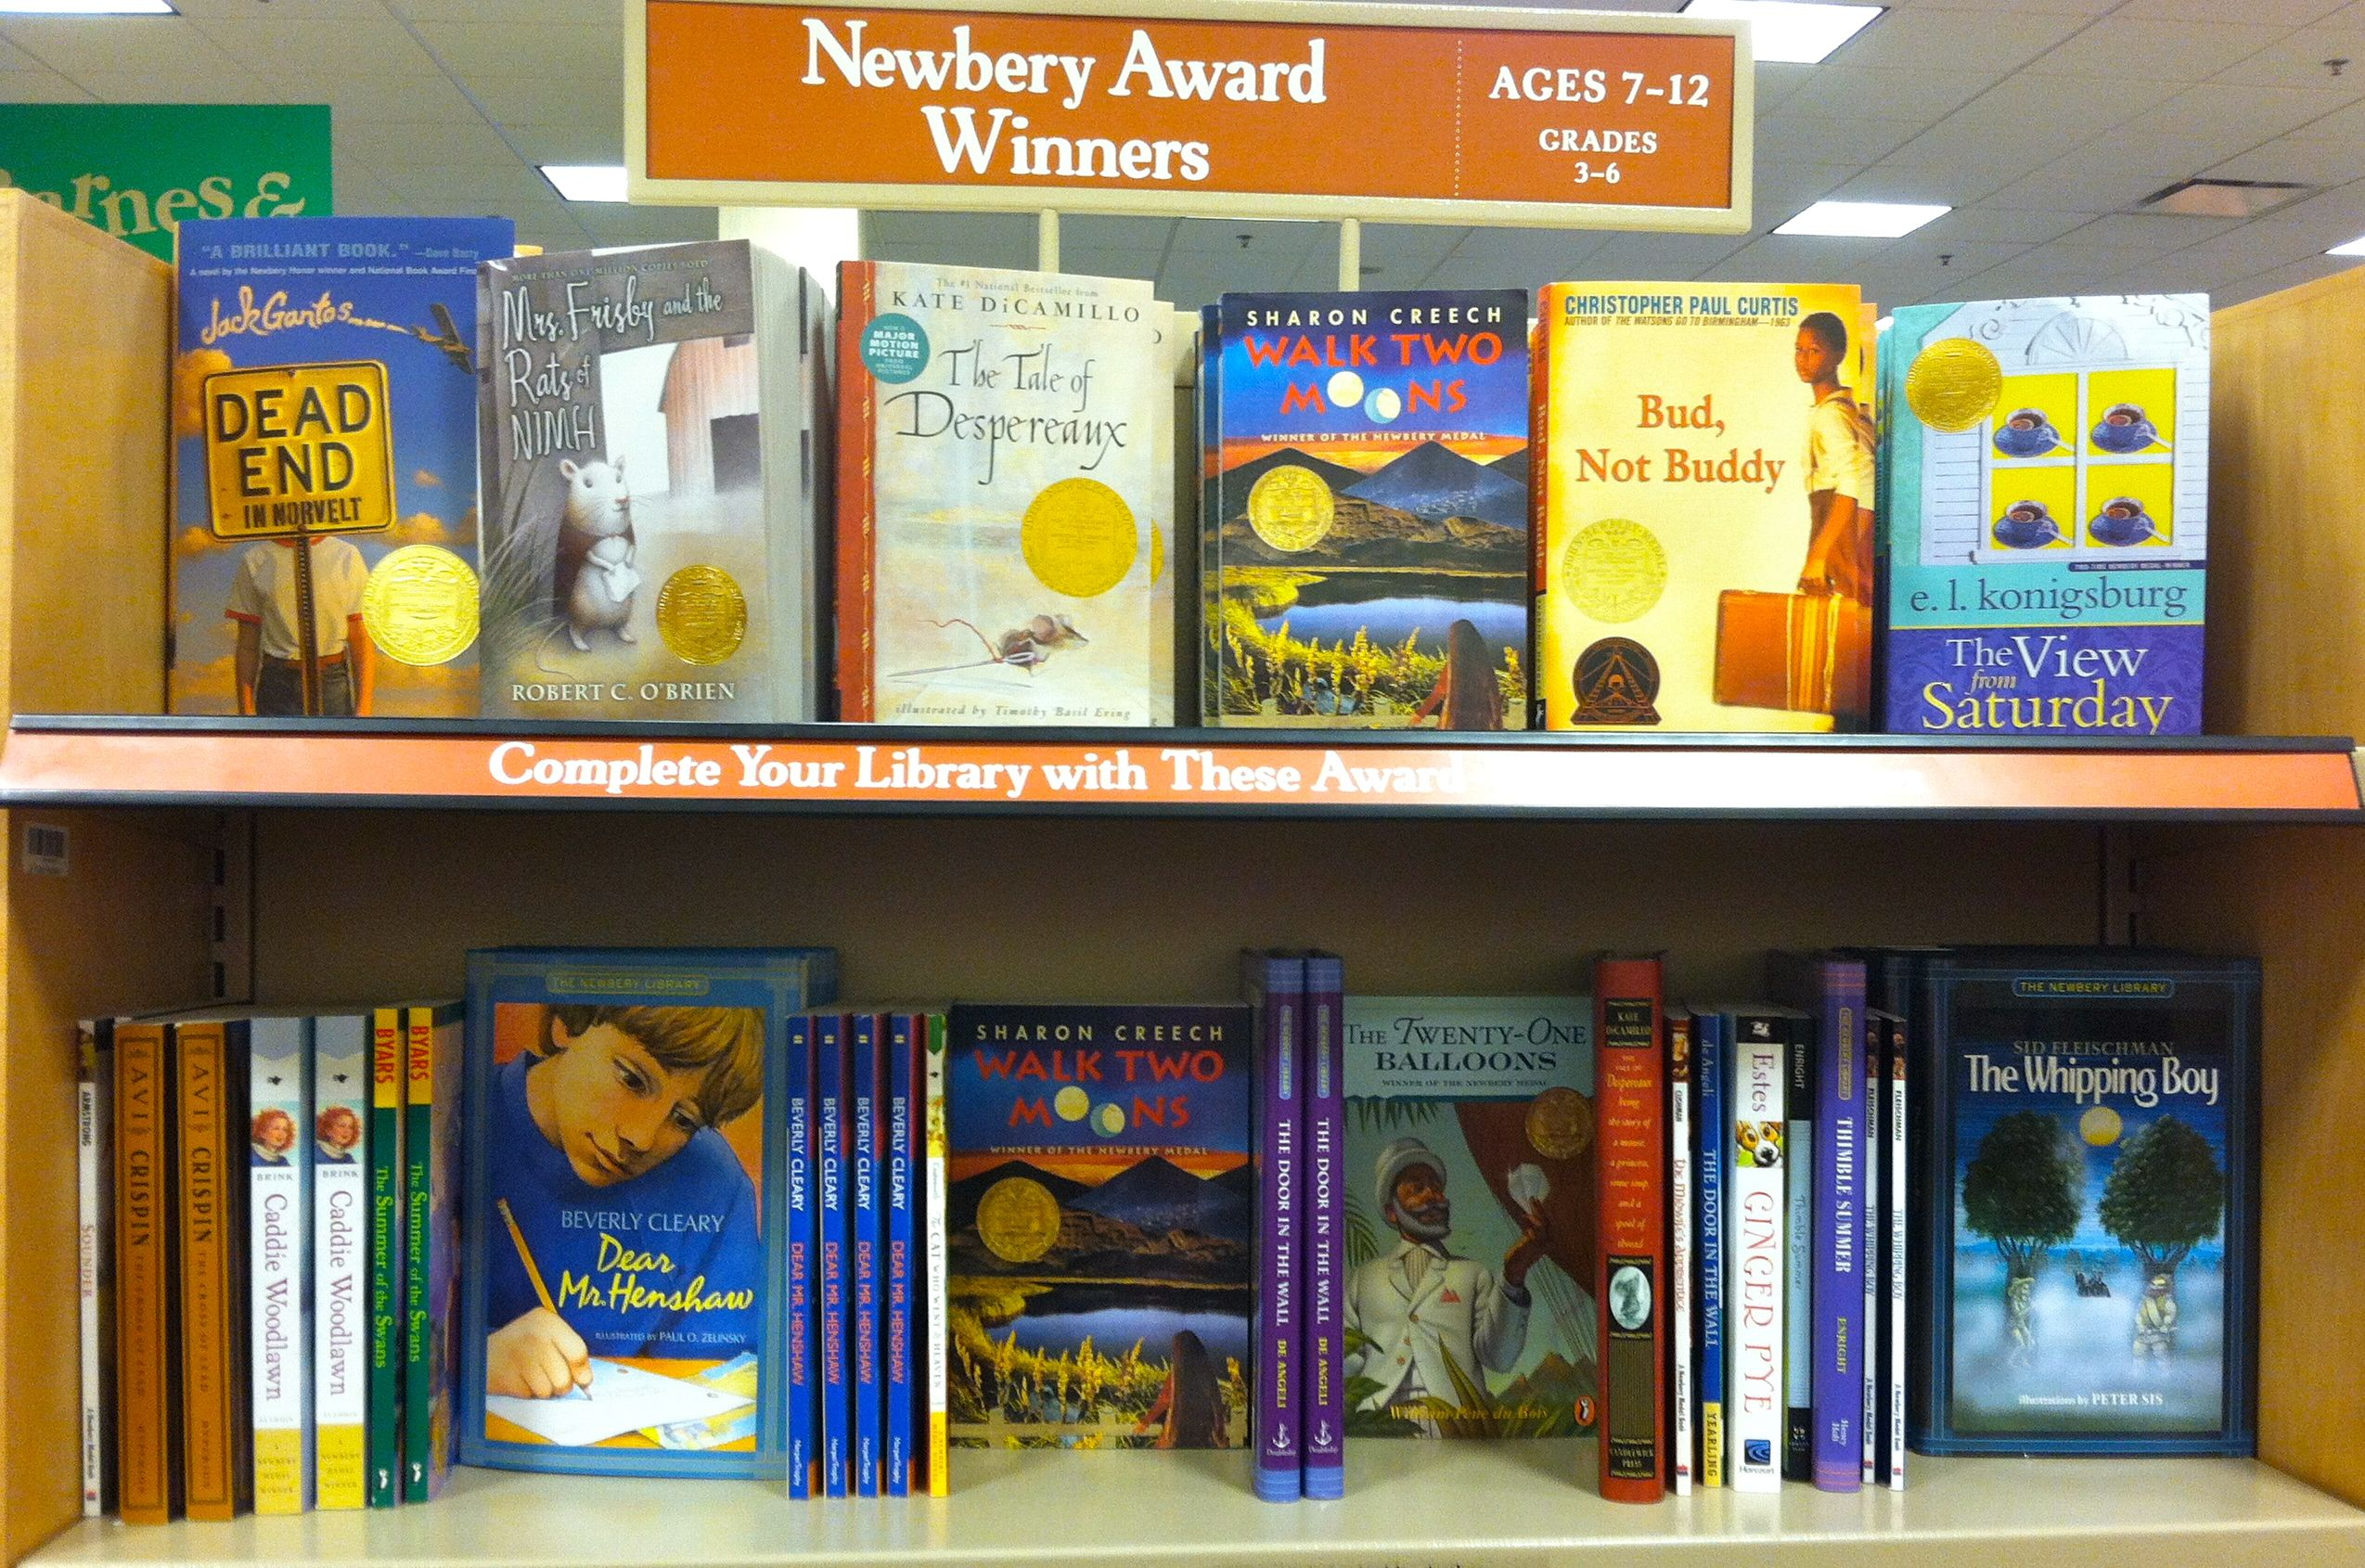 Newberry Award Winners For Ages 7 12 Year Olds